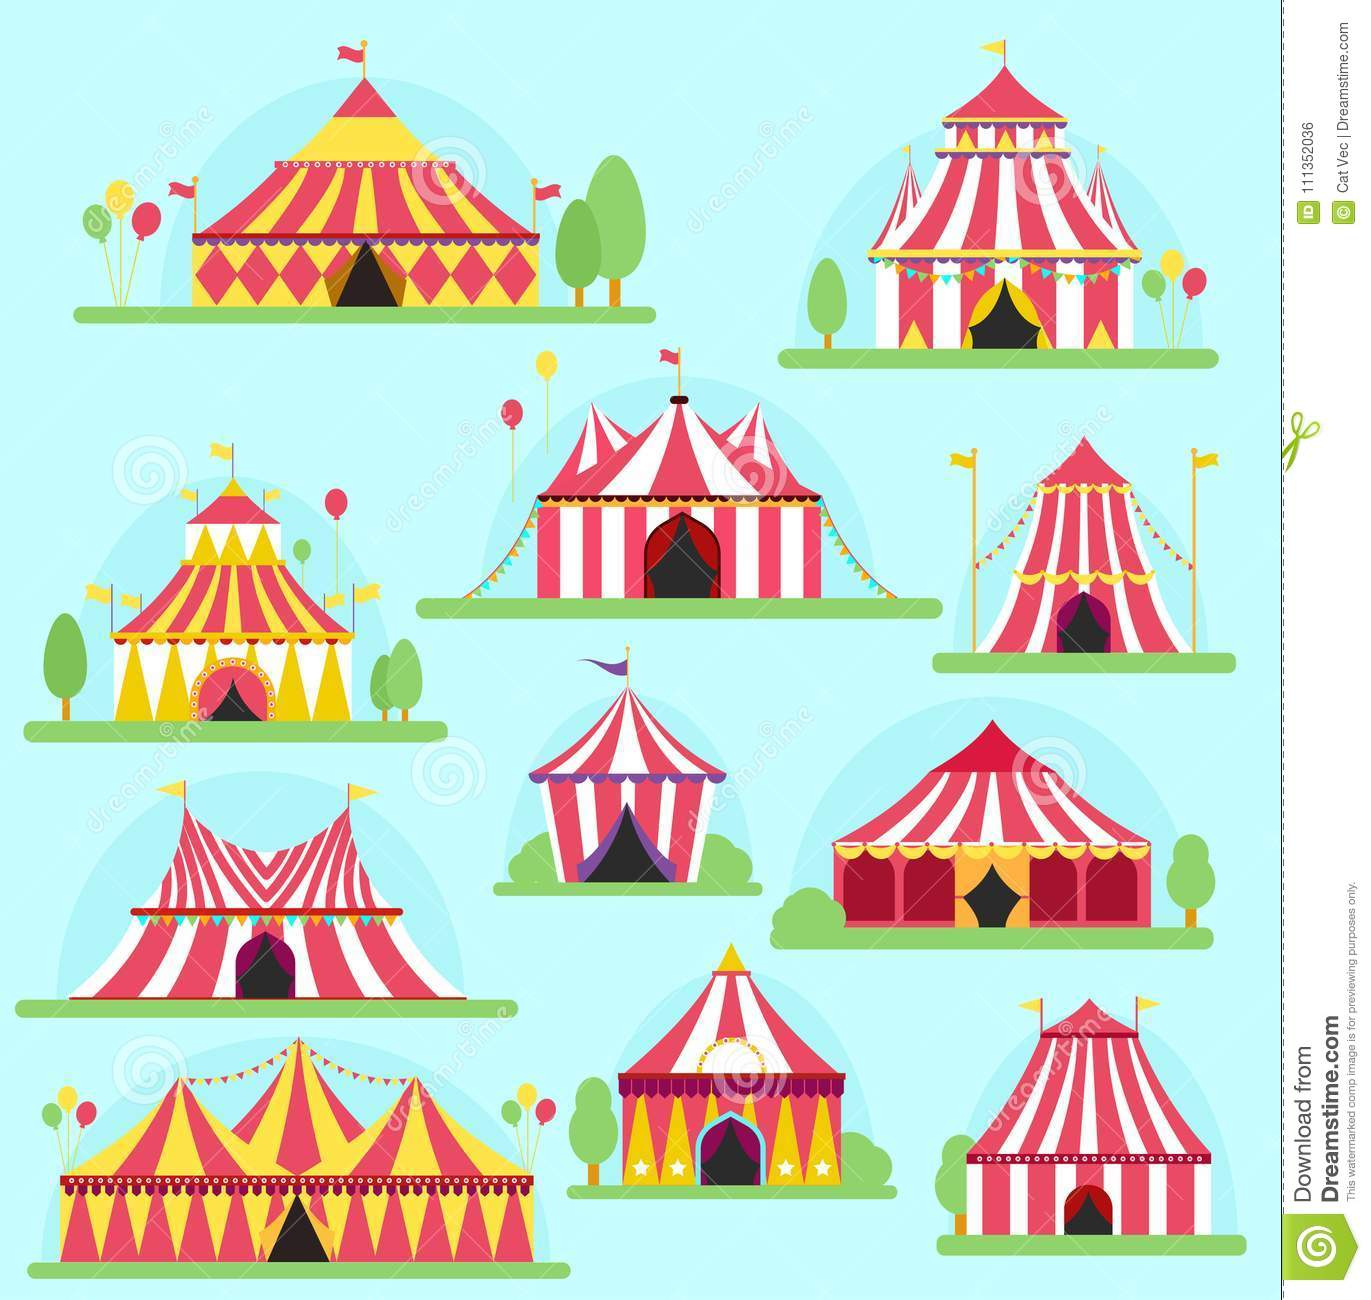 Circus vector tent facade marquee marquee stripes flags carnival entertainment balloons lelements flat illustration